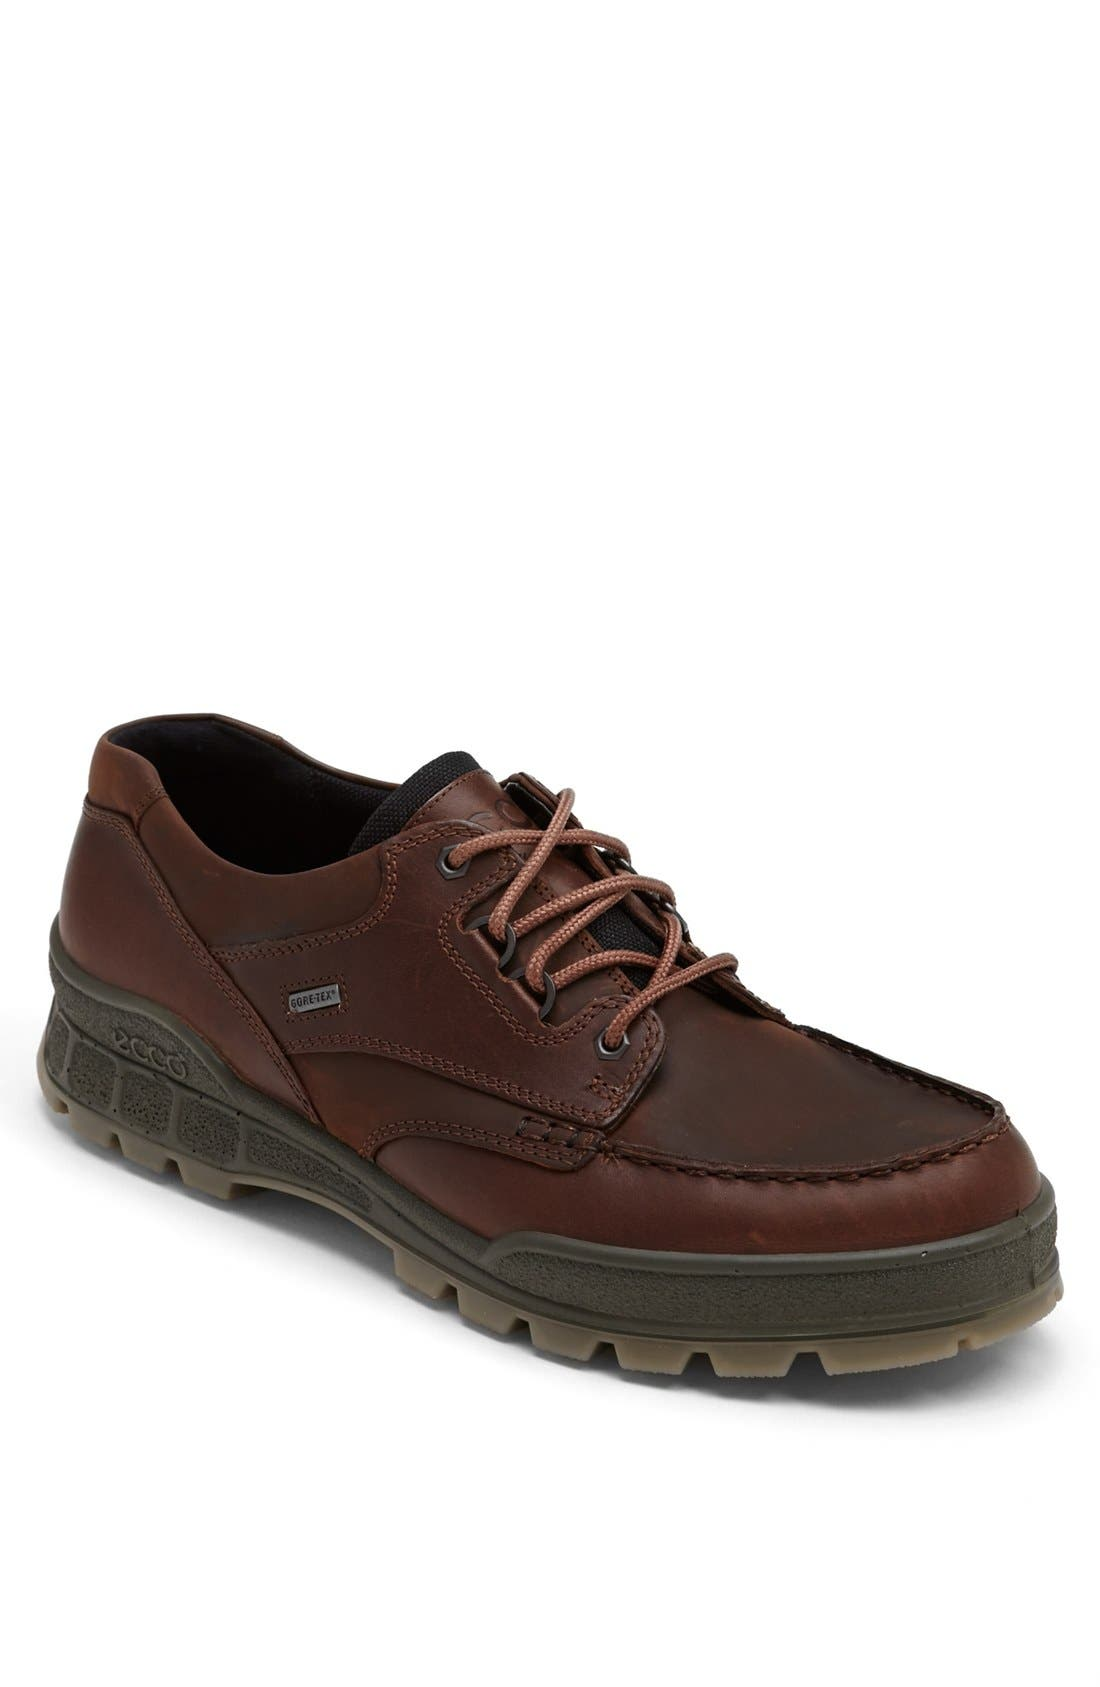 b2ffb3977509f Ecco 'Track Ii Moc Low' Oxford,8.5 - Brown